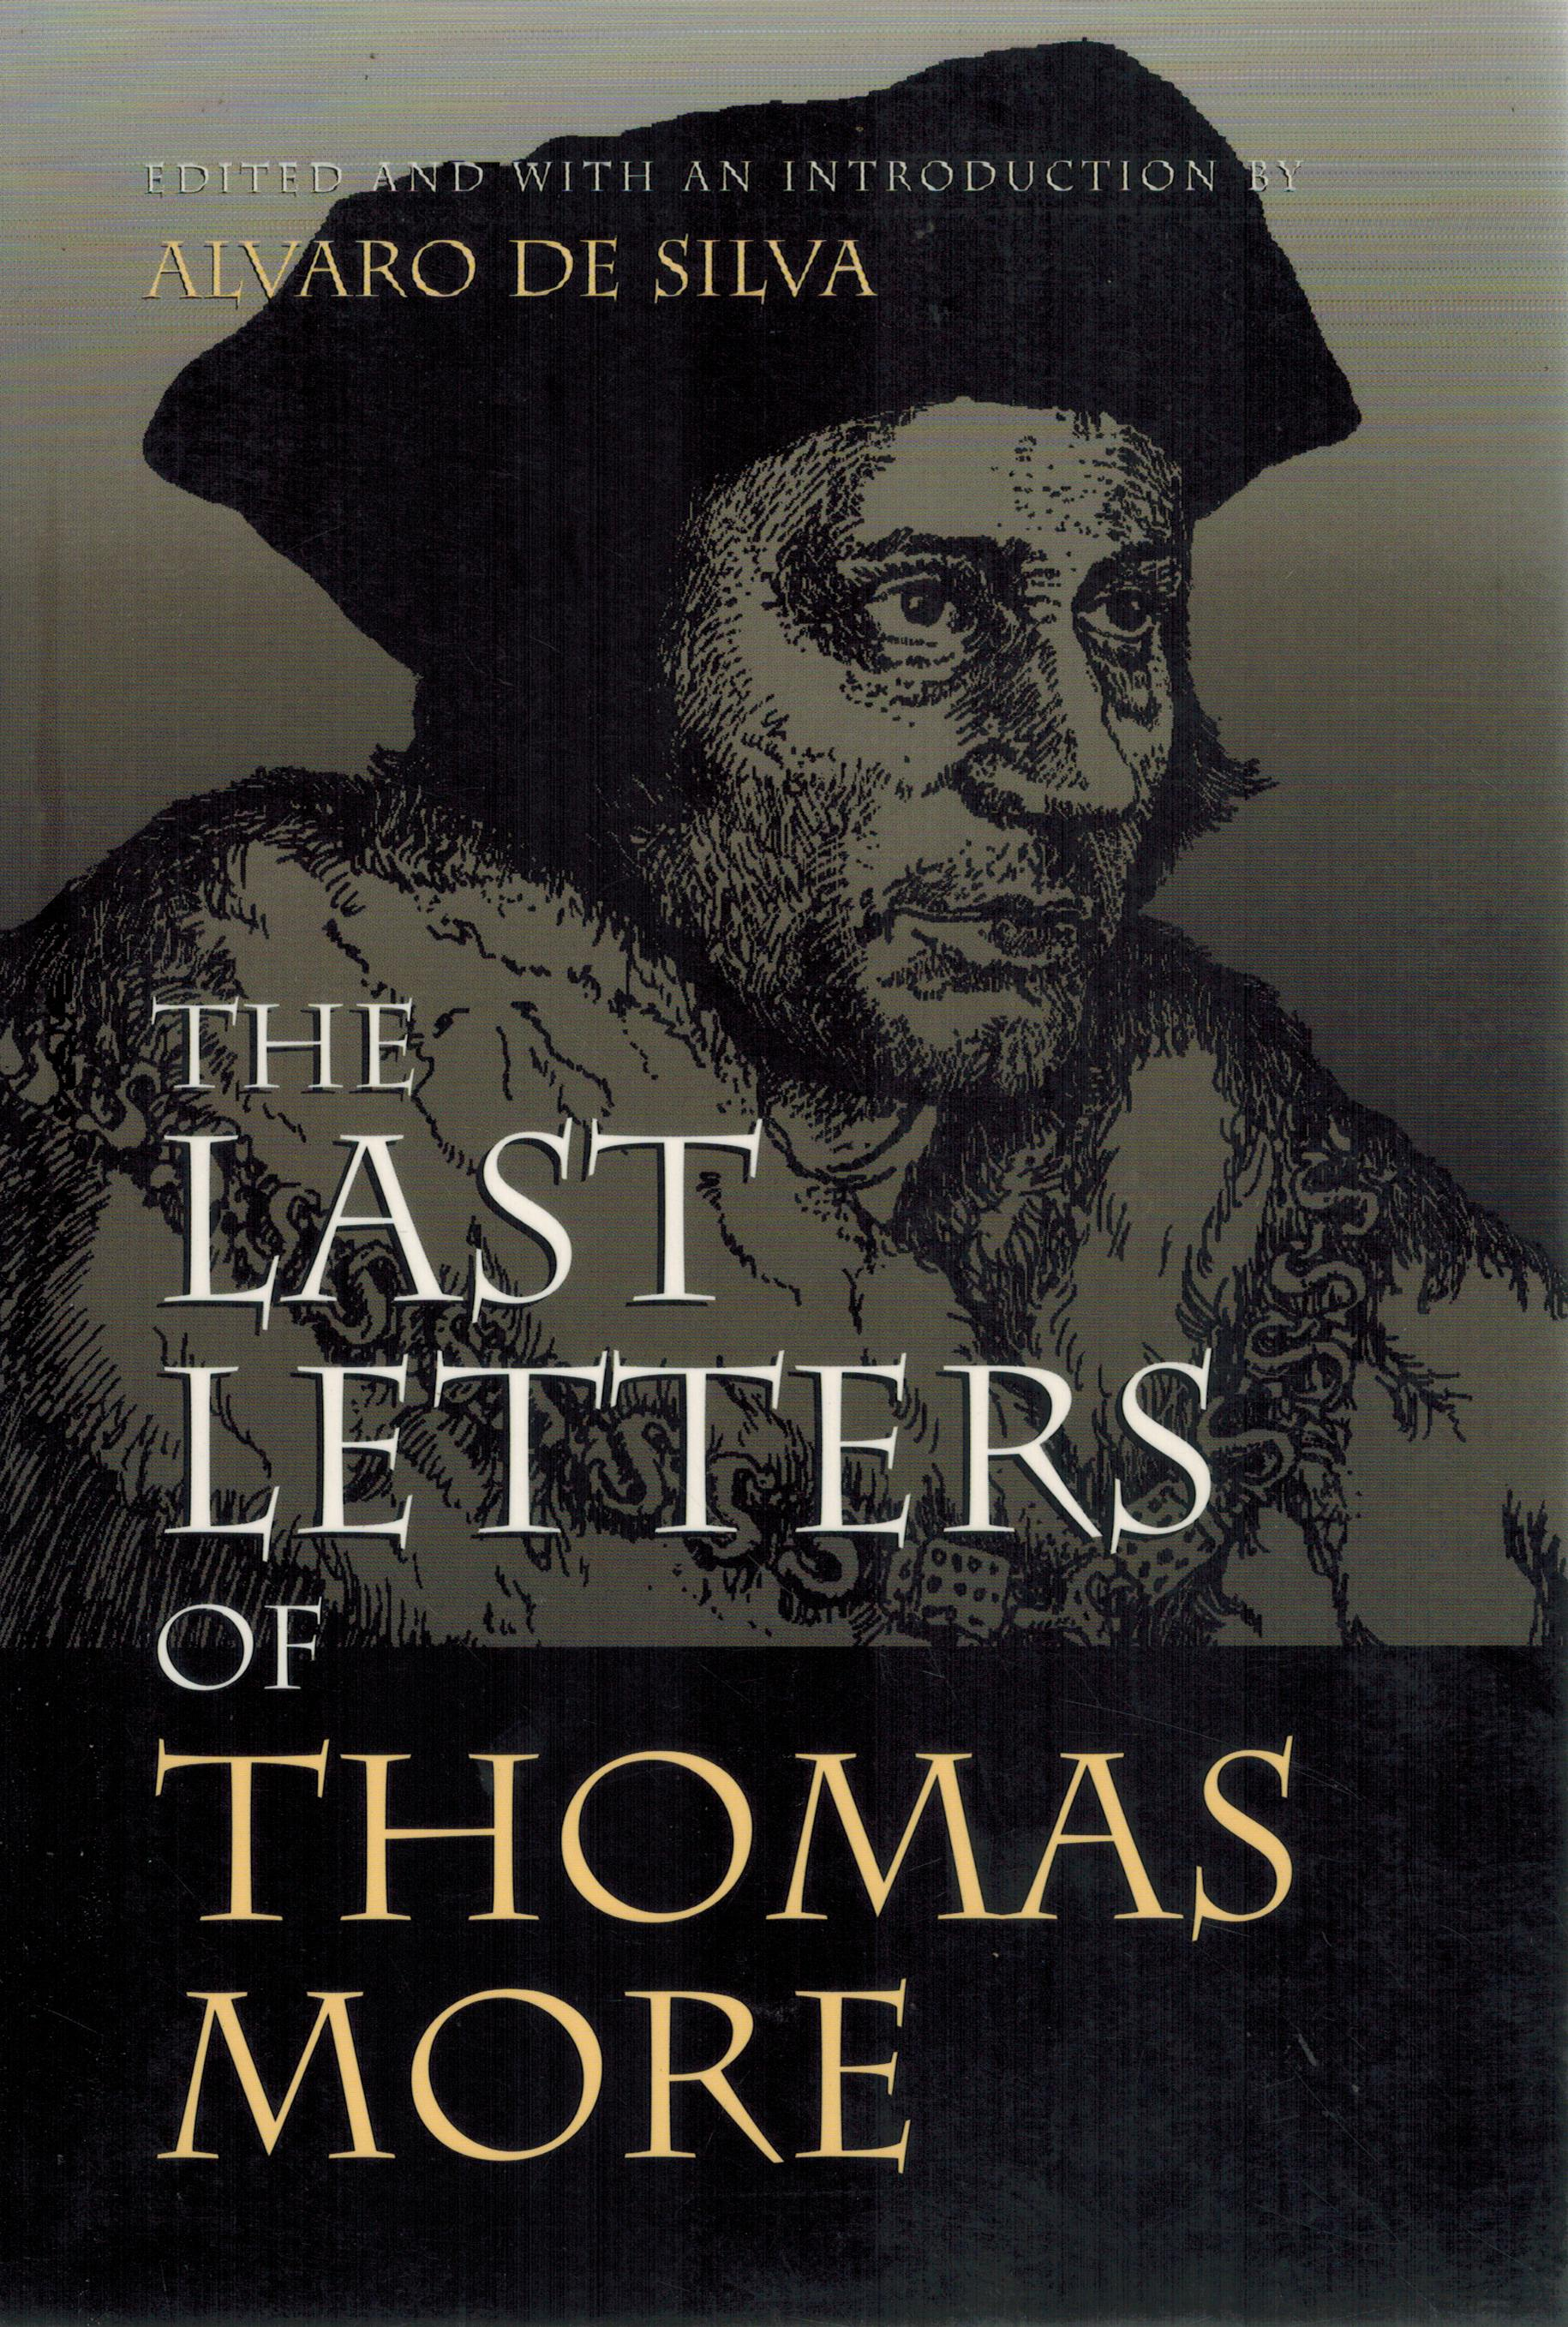 THE LAST LETTERS OF THOMAS MORE - More, Thomas; Silva, Alvaro de